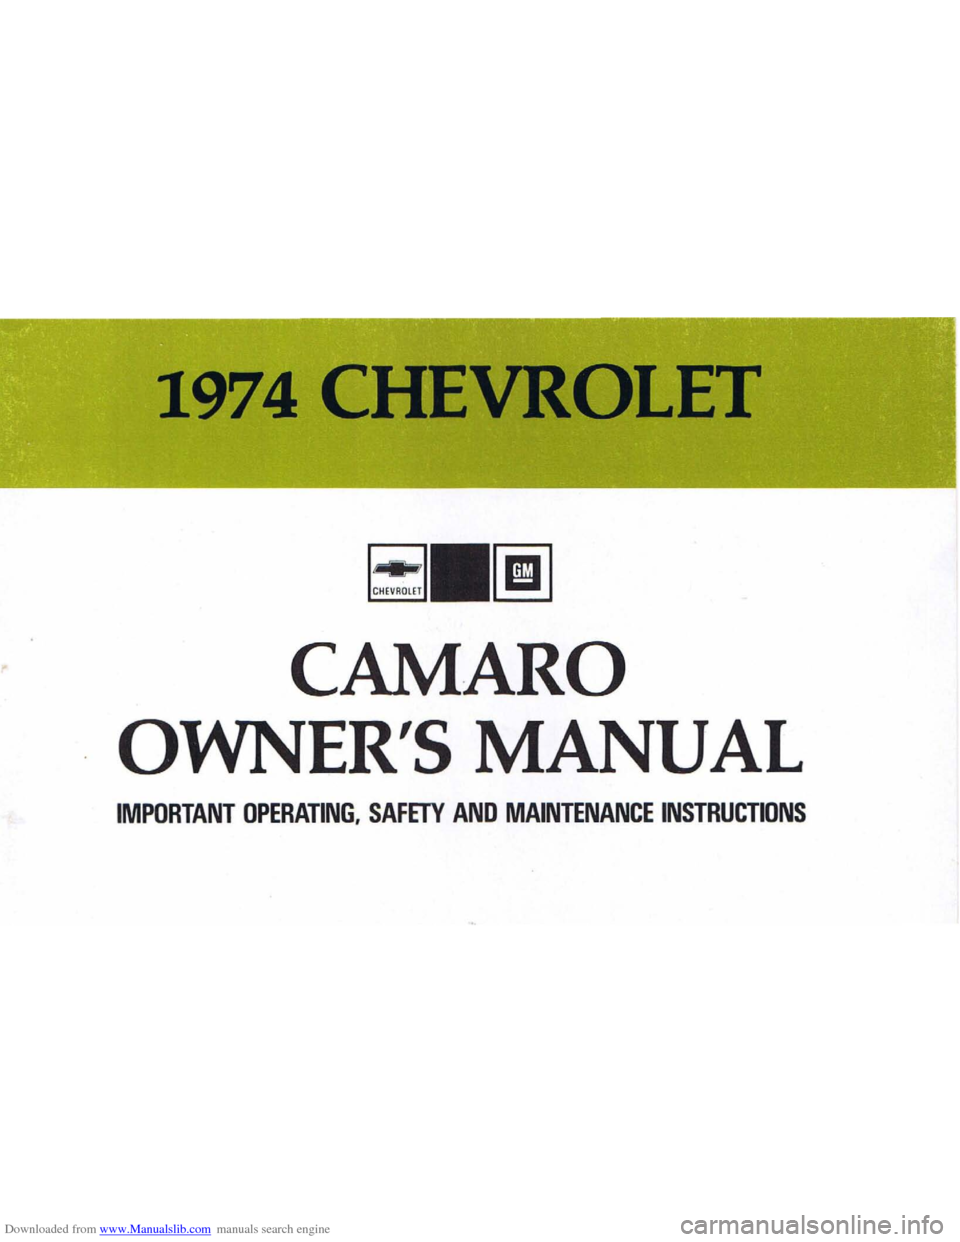 CHEVROLET CAMARO 1974 2.G Owners Manual, Page 1